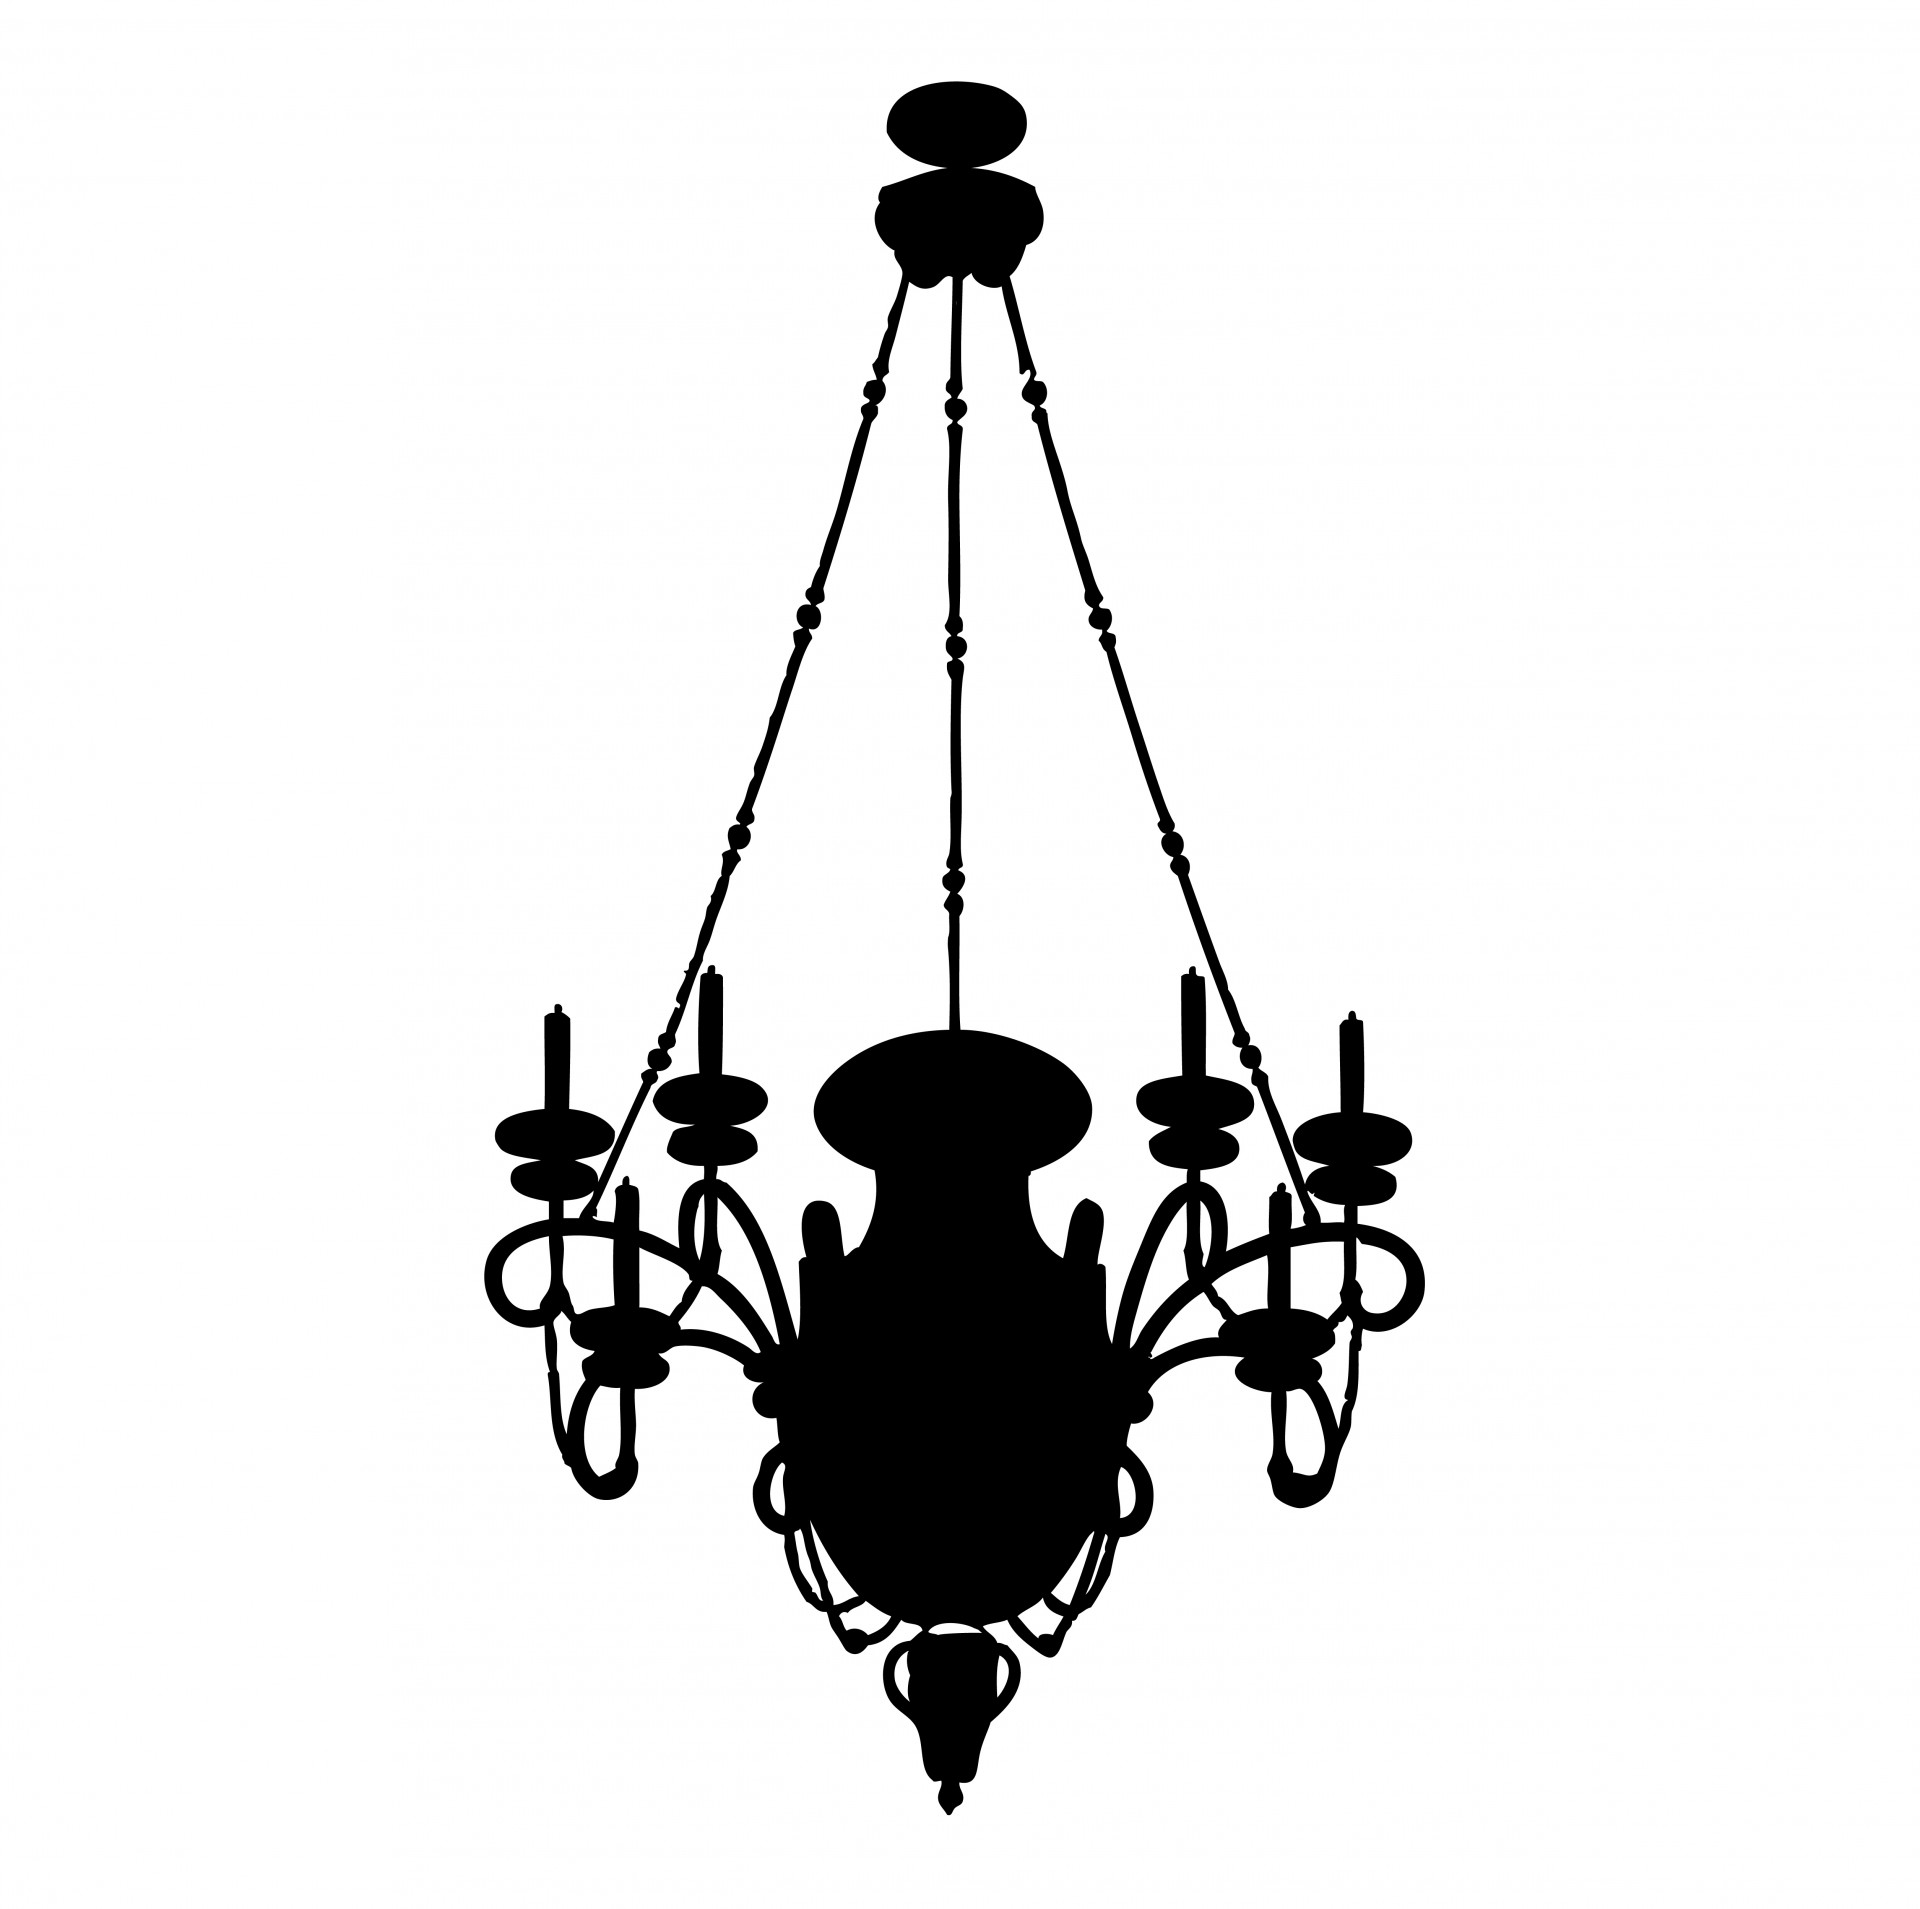 Free Clipart For Commercial Use